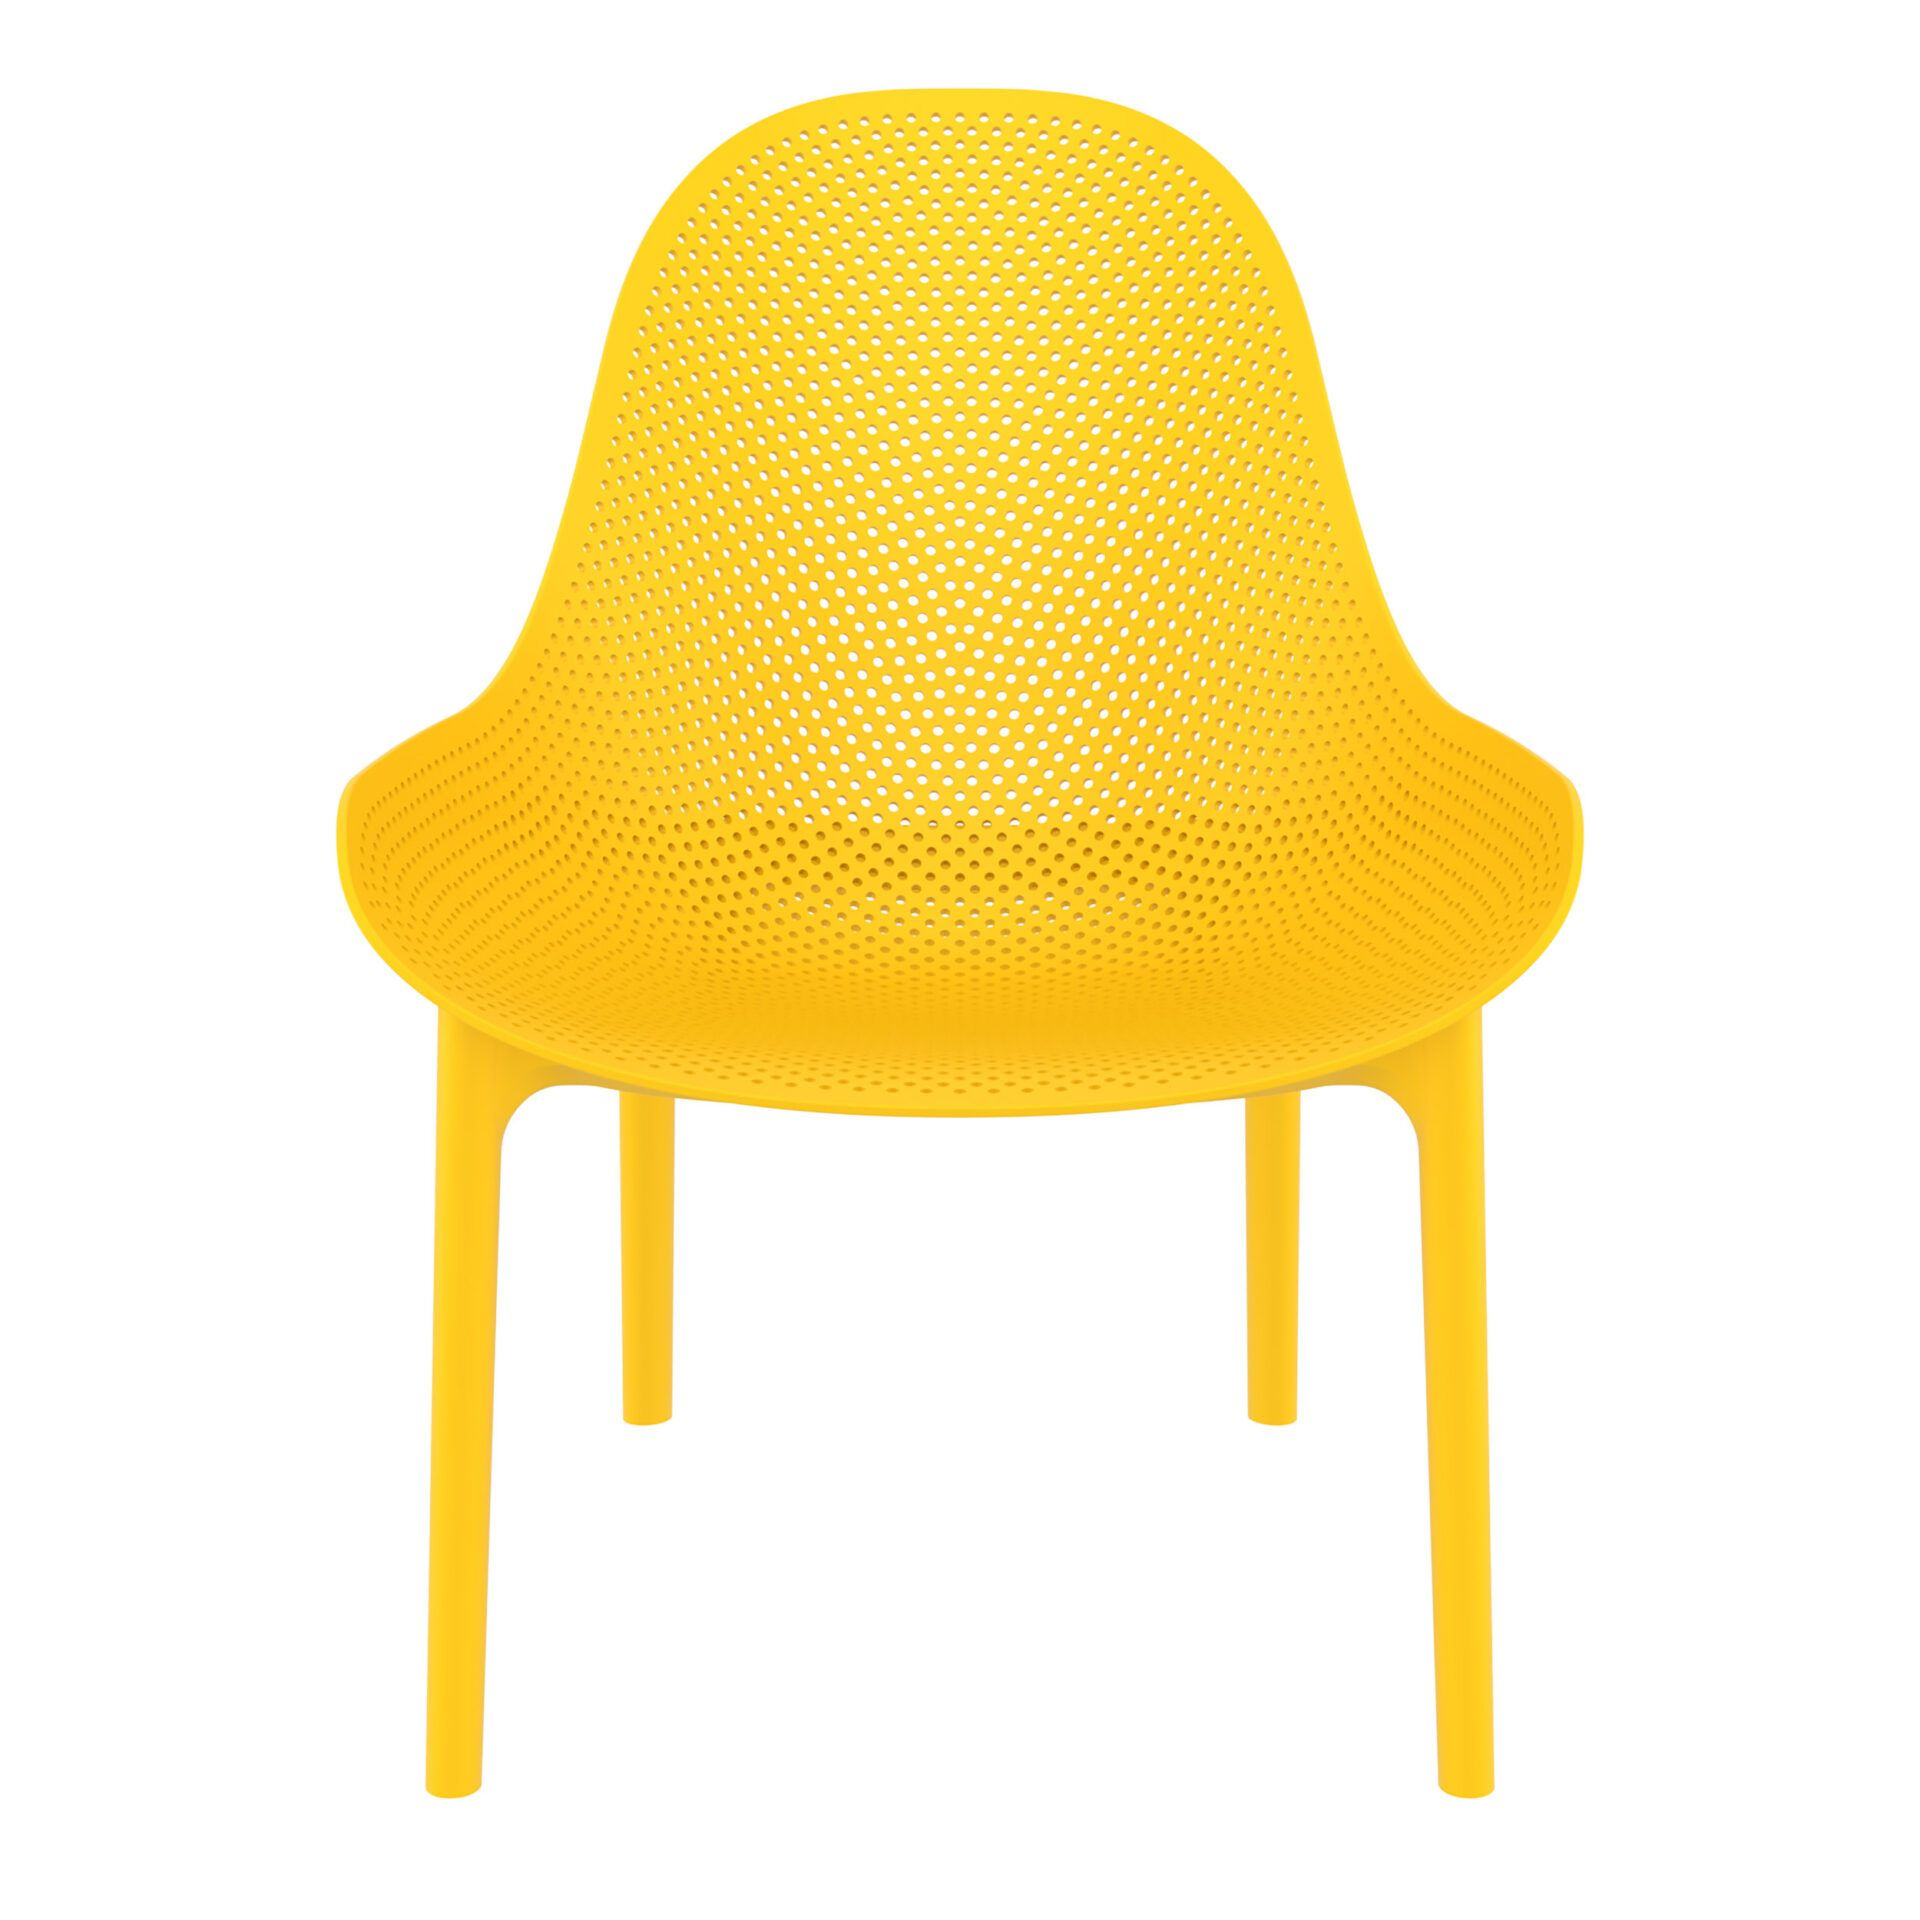 outdoor seating polypropylene sky lounge yellow front